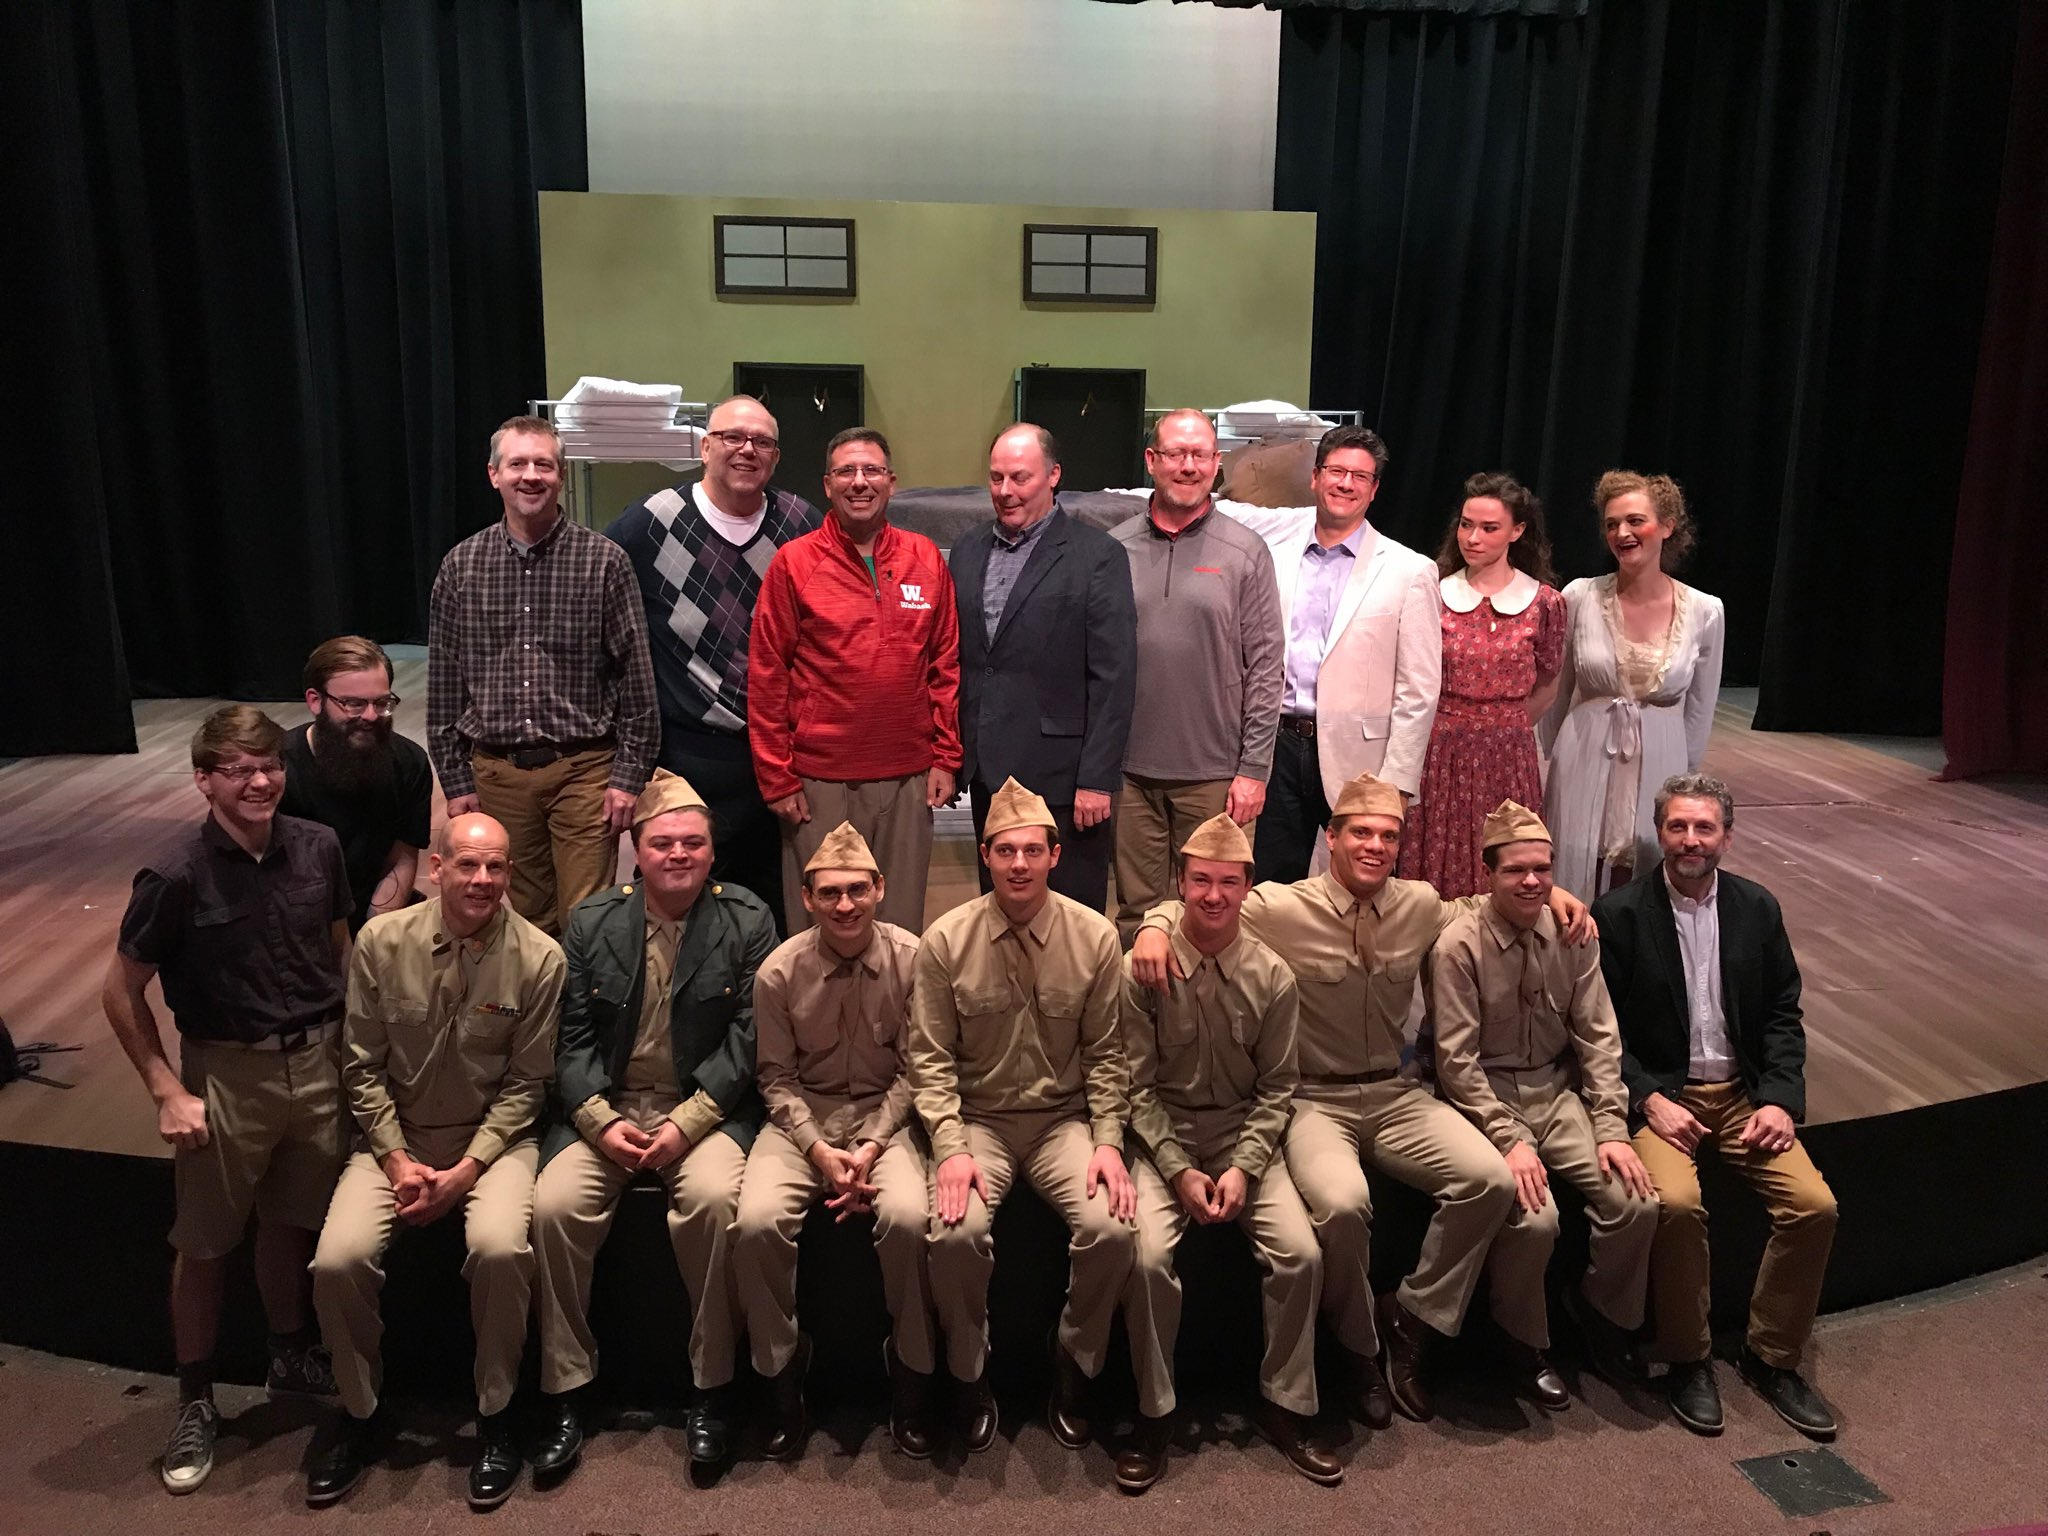 Wabash College On Twitter The Cast And Crew Of Biloxi Blues